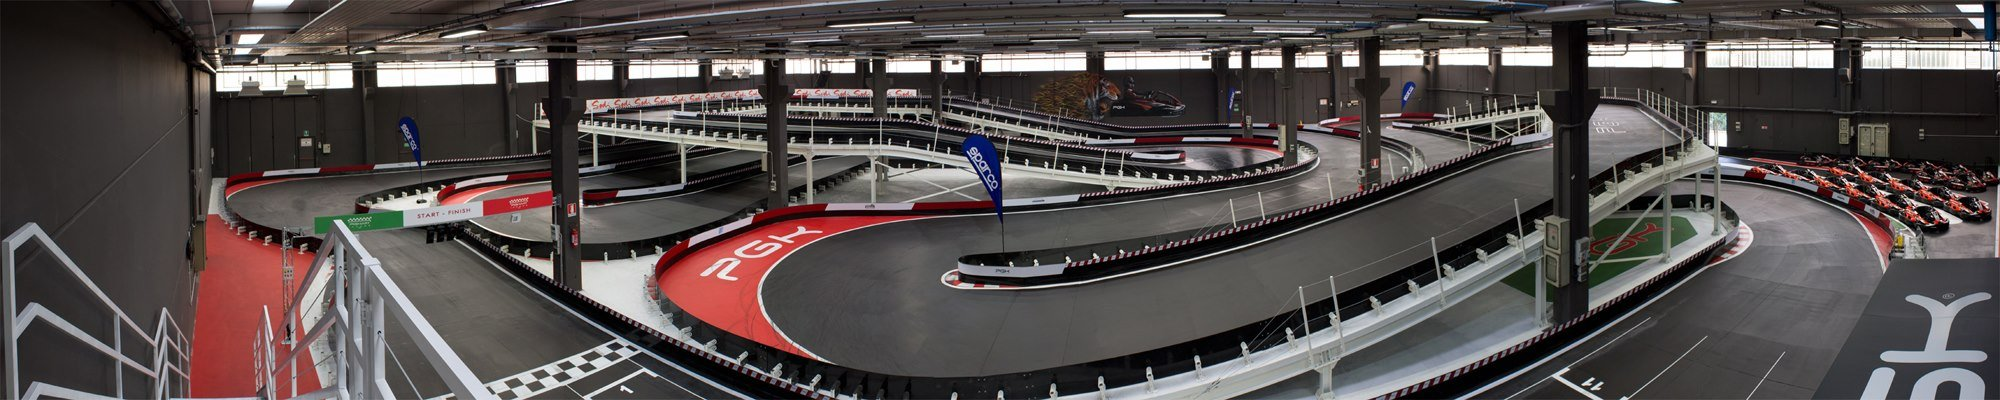 Pgkart Indoor